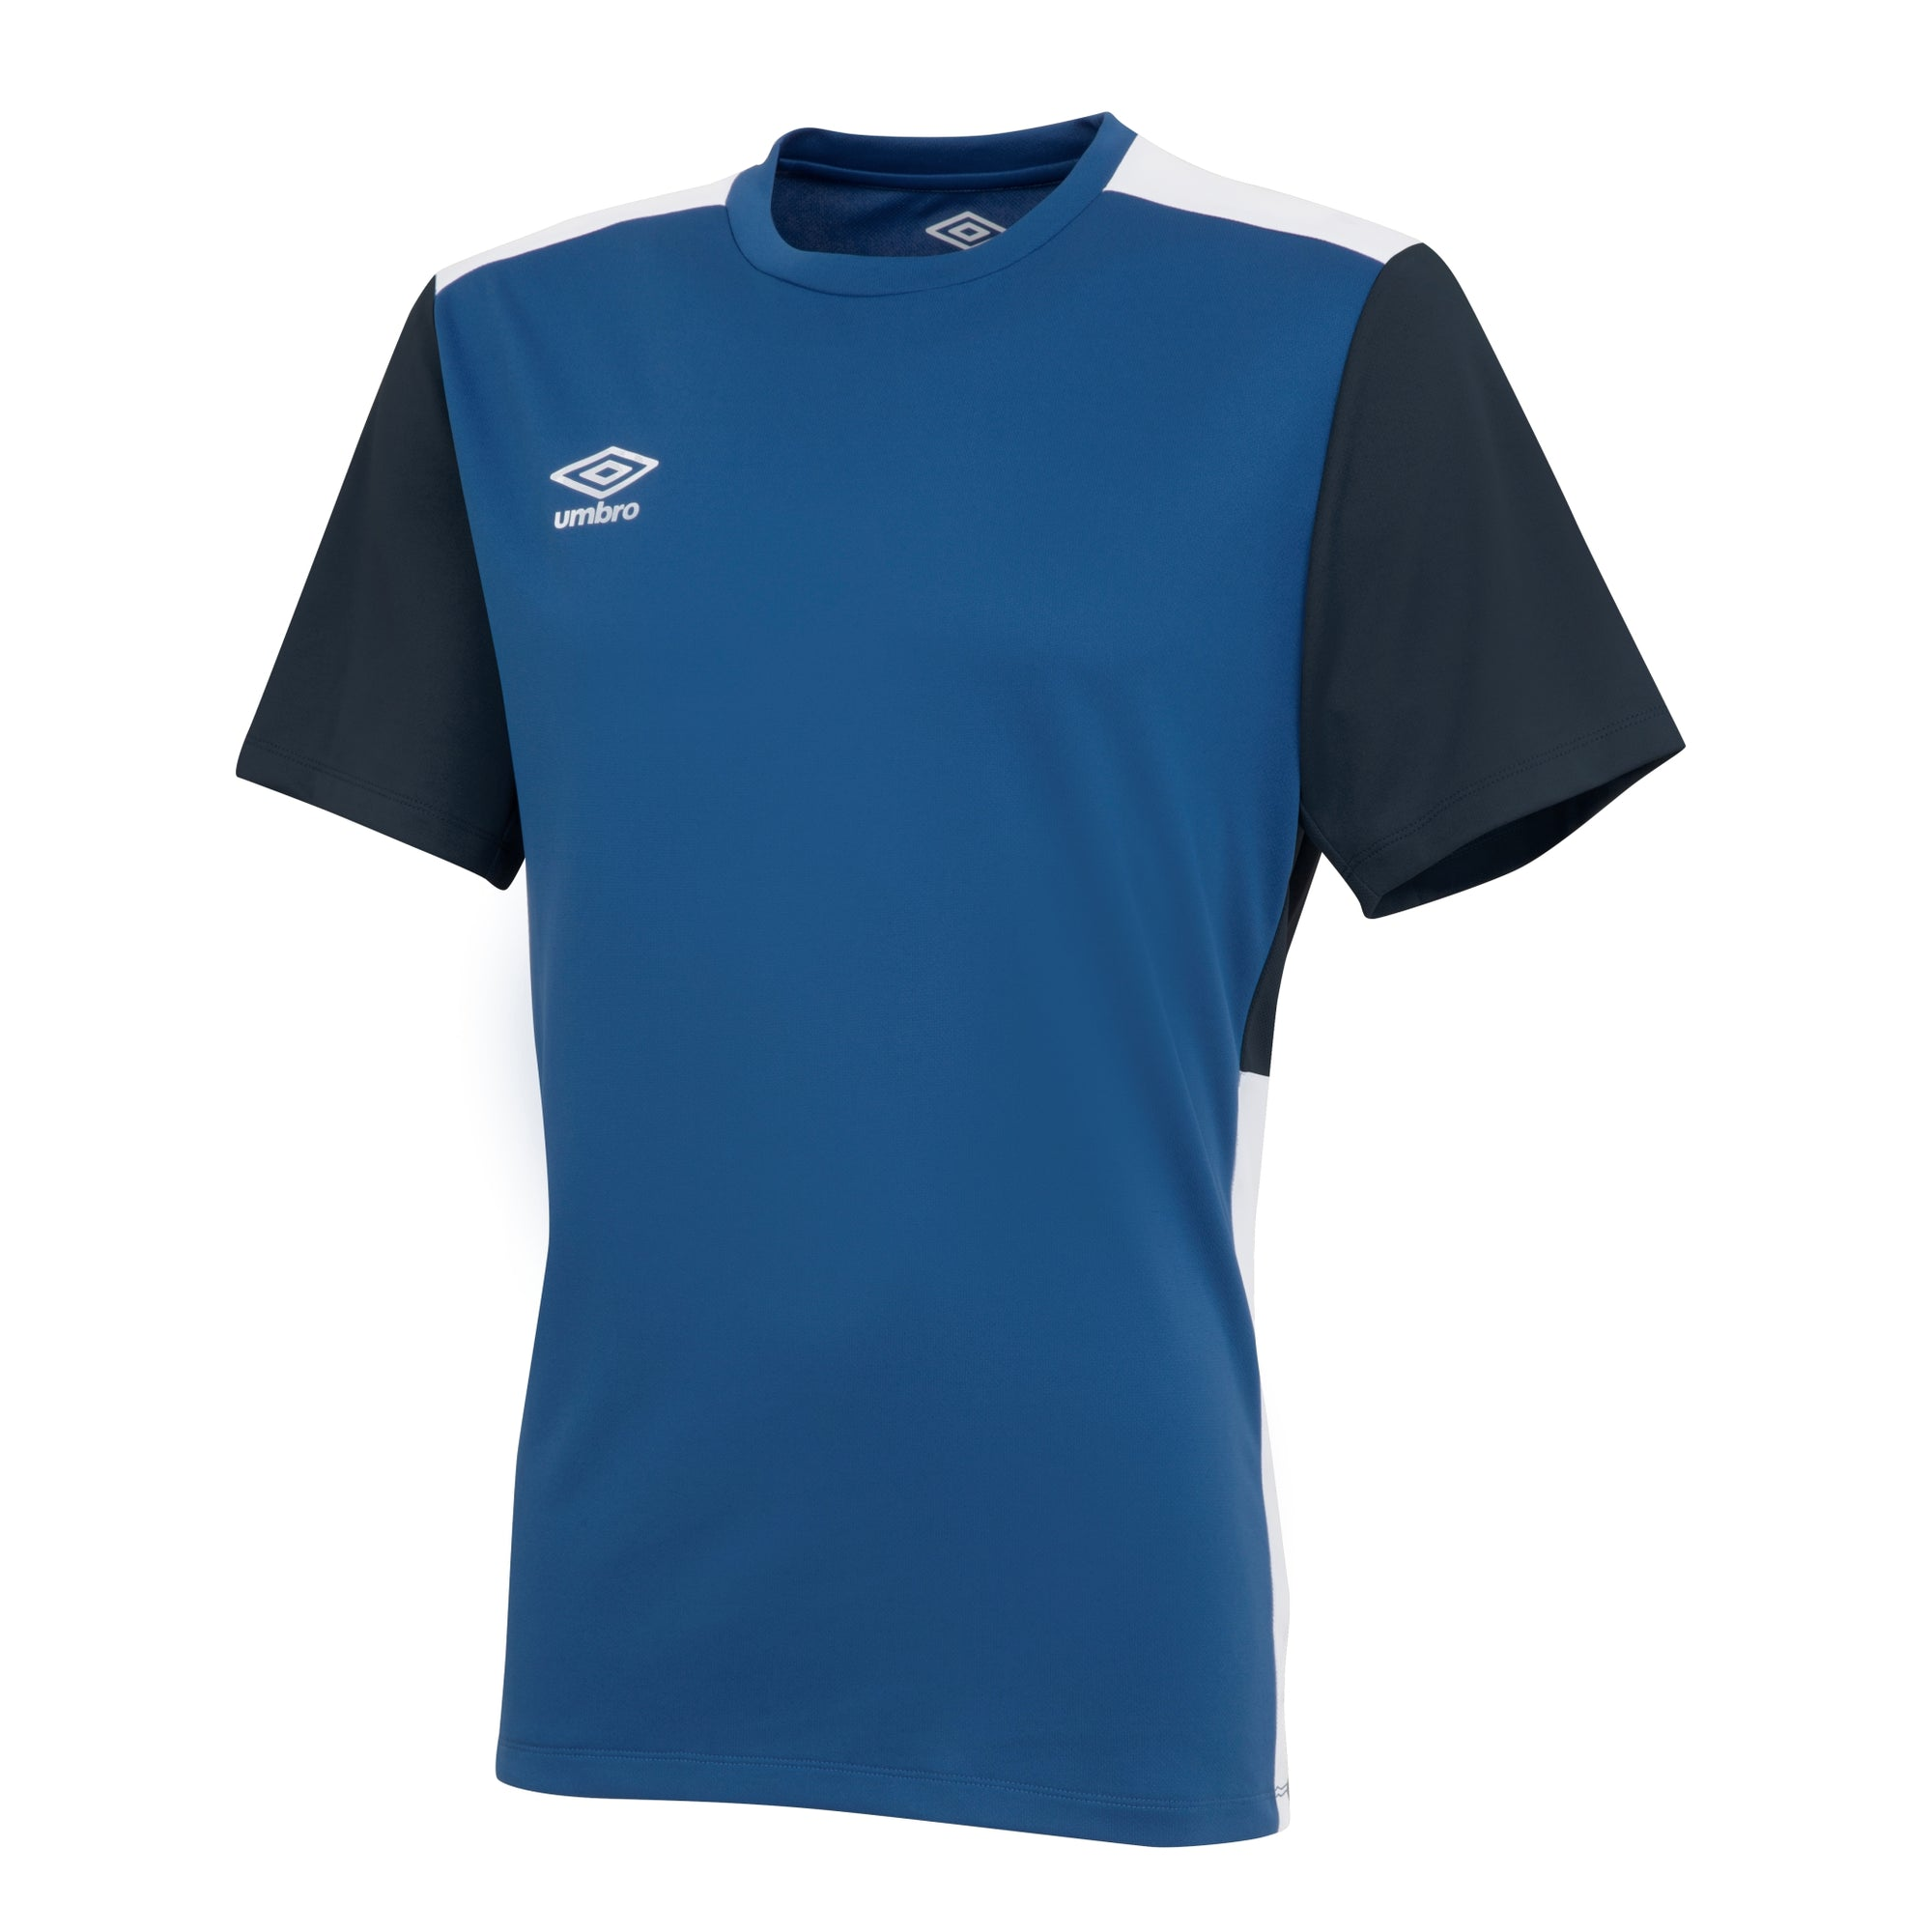 Umbro Training Jersey - Navy/Dark Navy/White